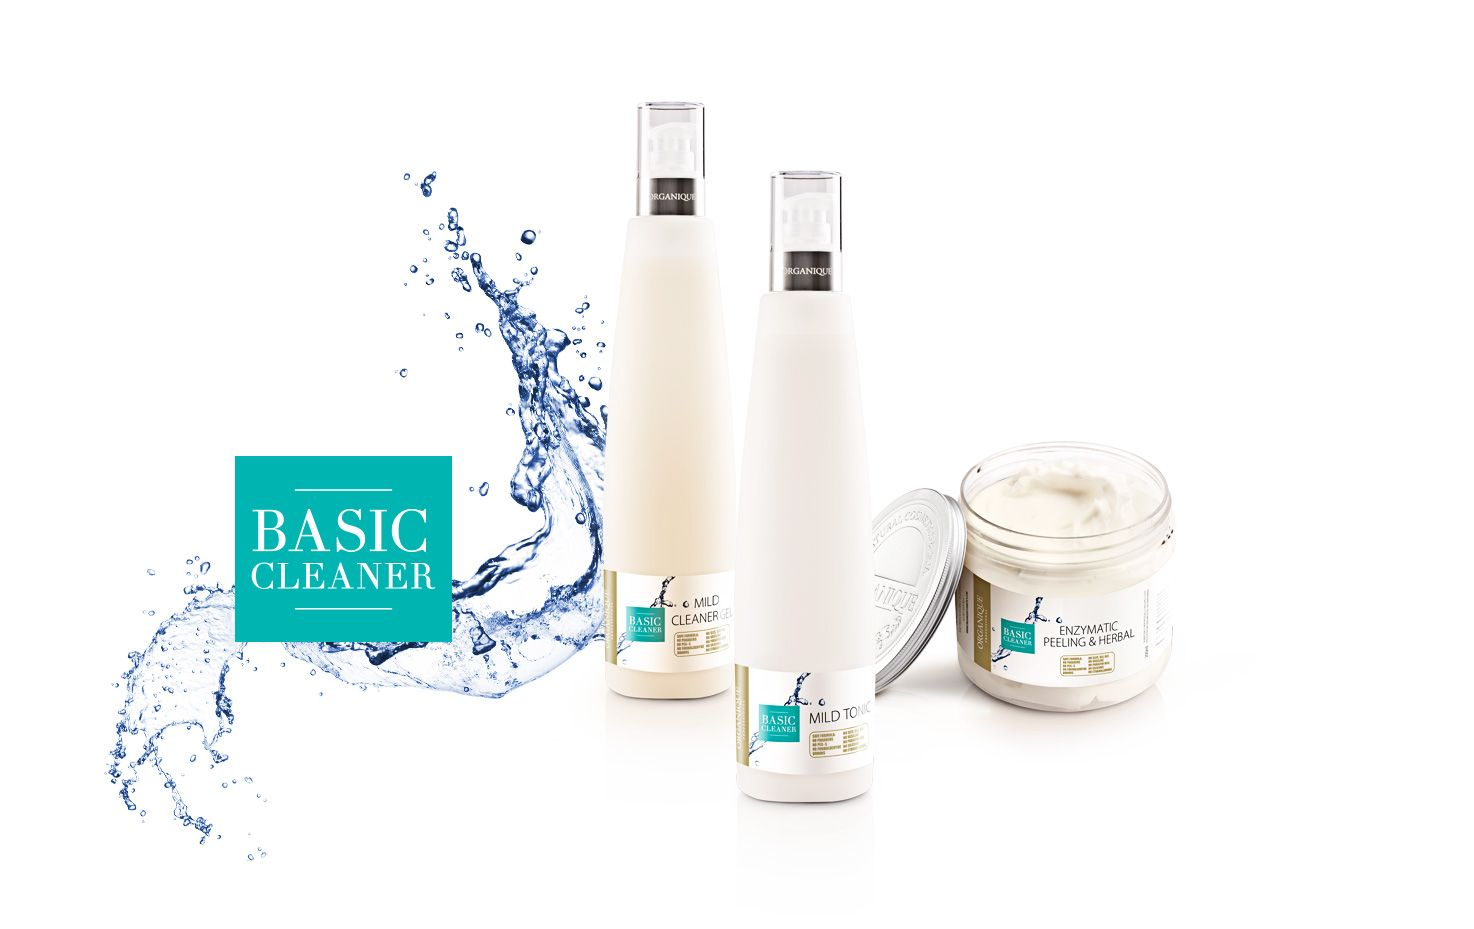 ORGANIQUE Packaging - Basic Cleaner & Dermo Expert